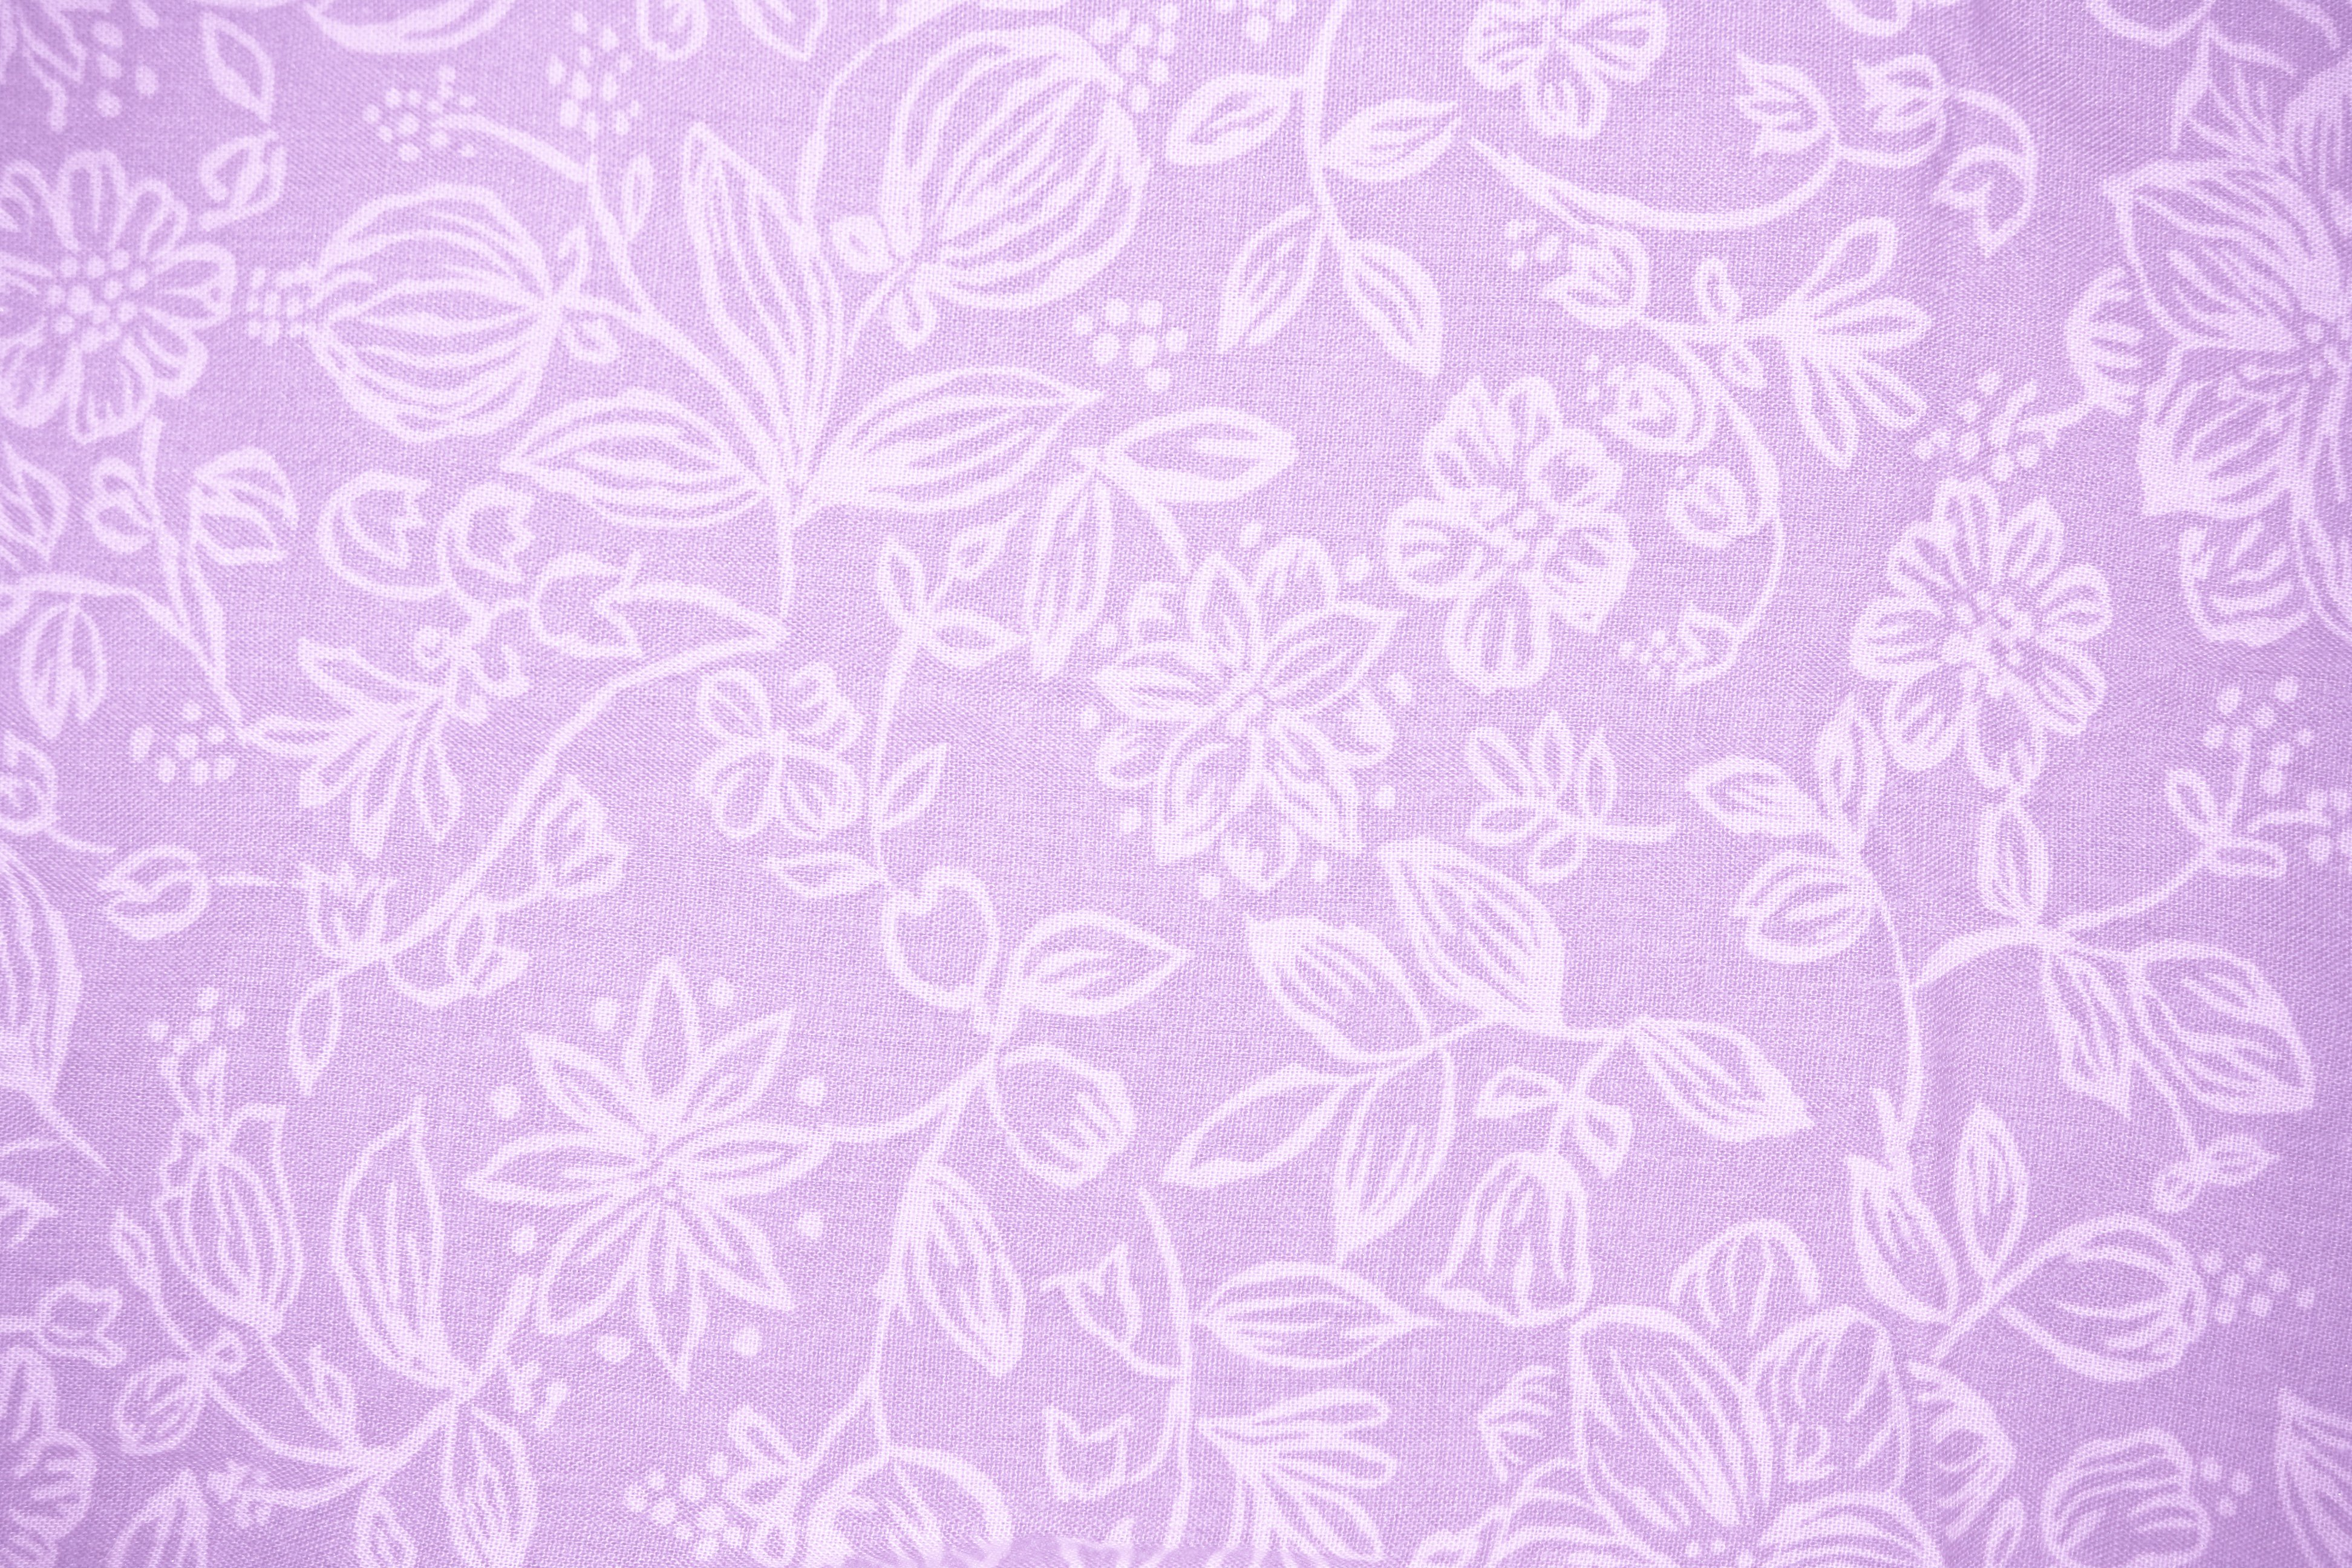 lavender fabric with floral pattern texture � photos